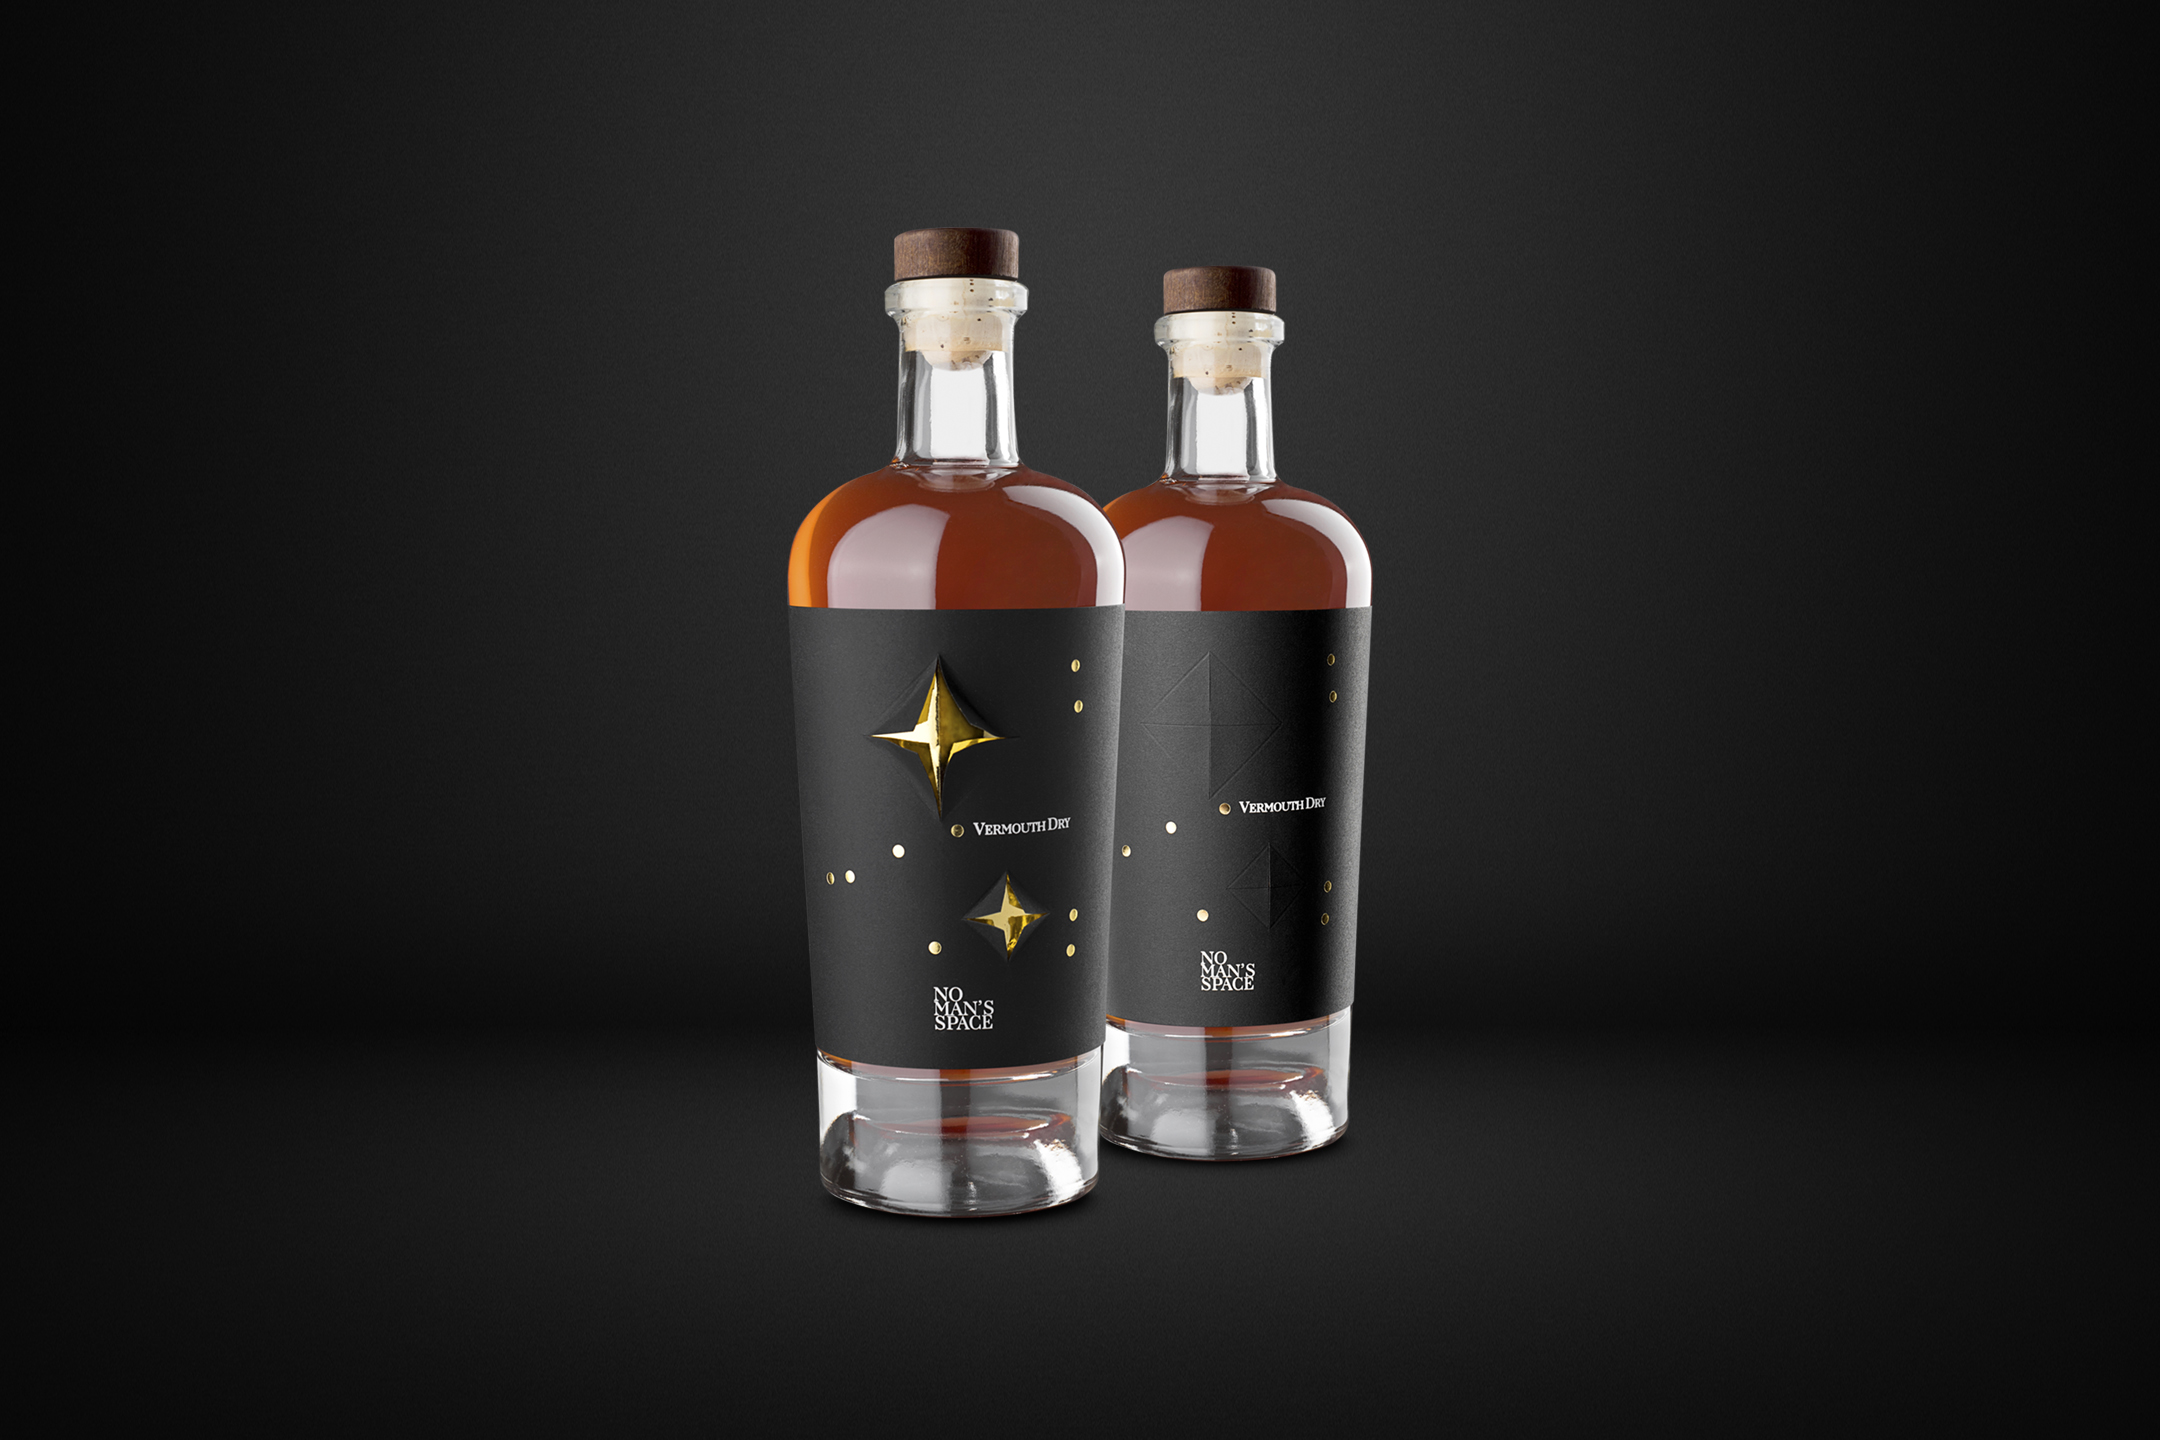 spazio-di-paolo-packaging-spirit-label-award-design-gin-brand-breeder-no-mans-space-13